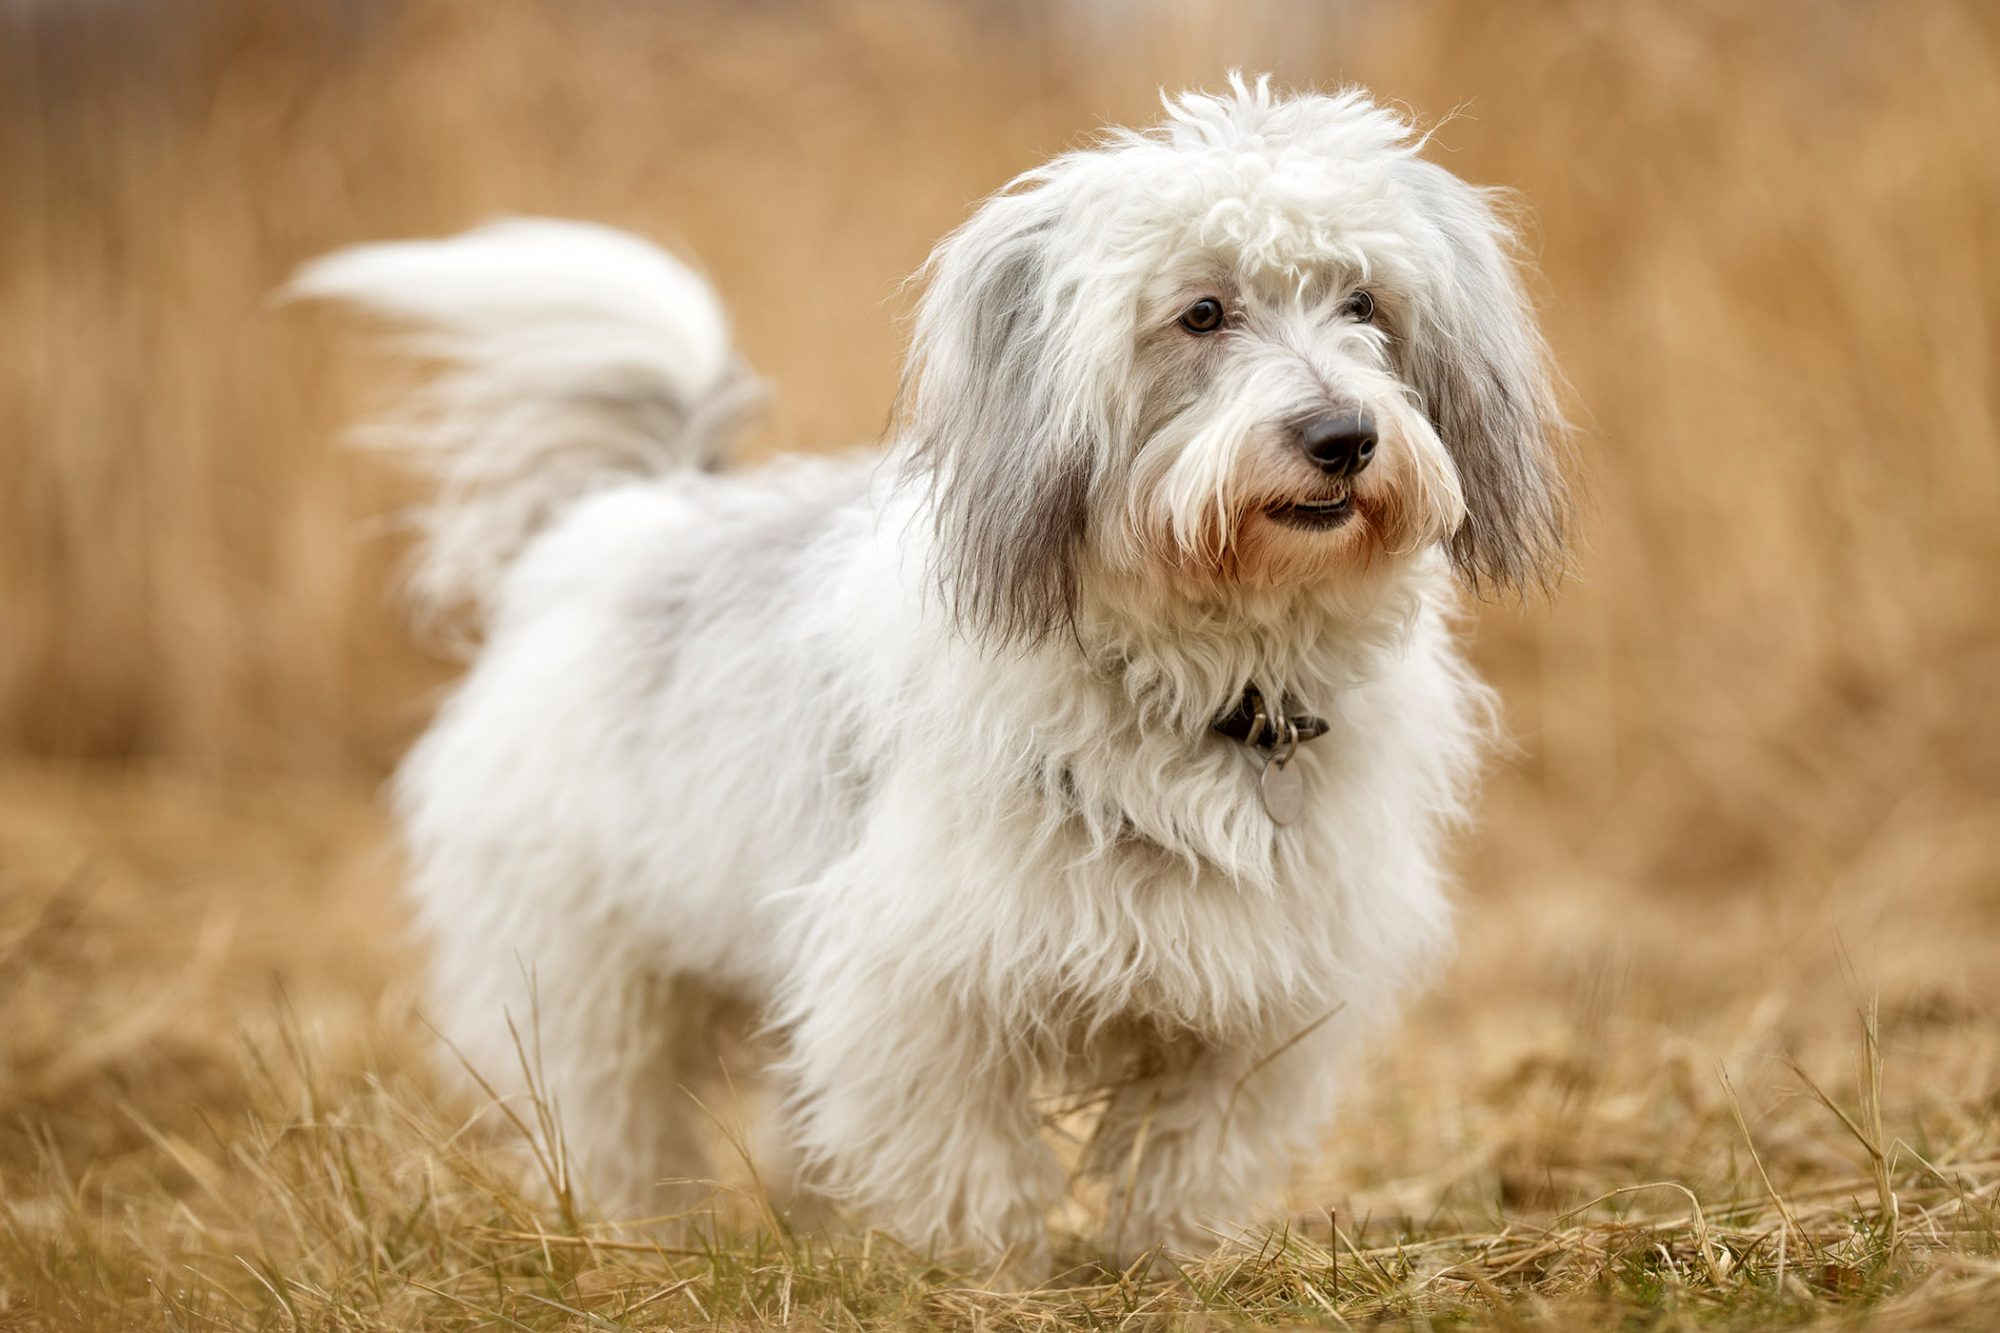 coton de tulear dog standing in field of brown grass